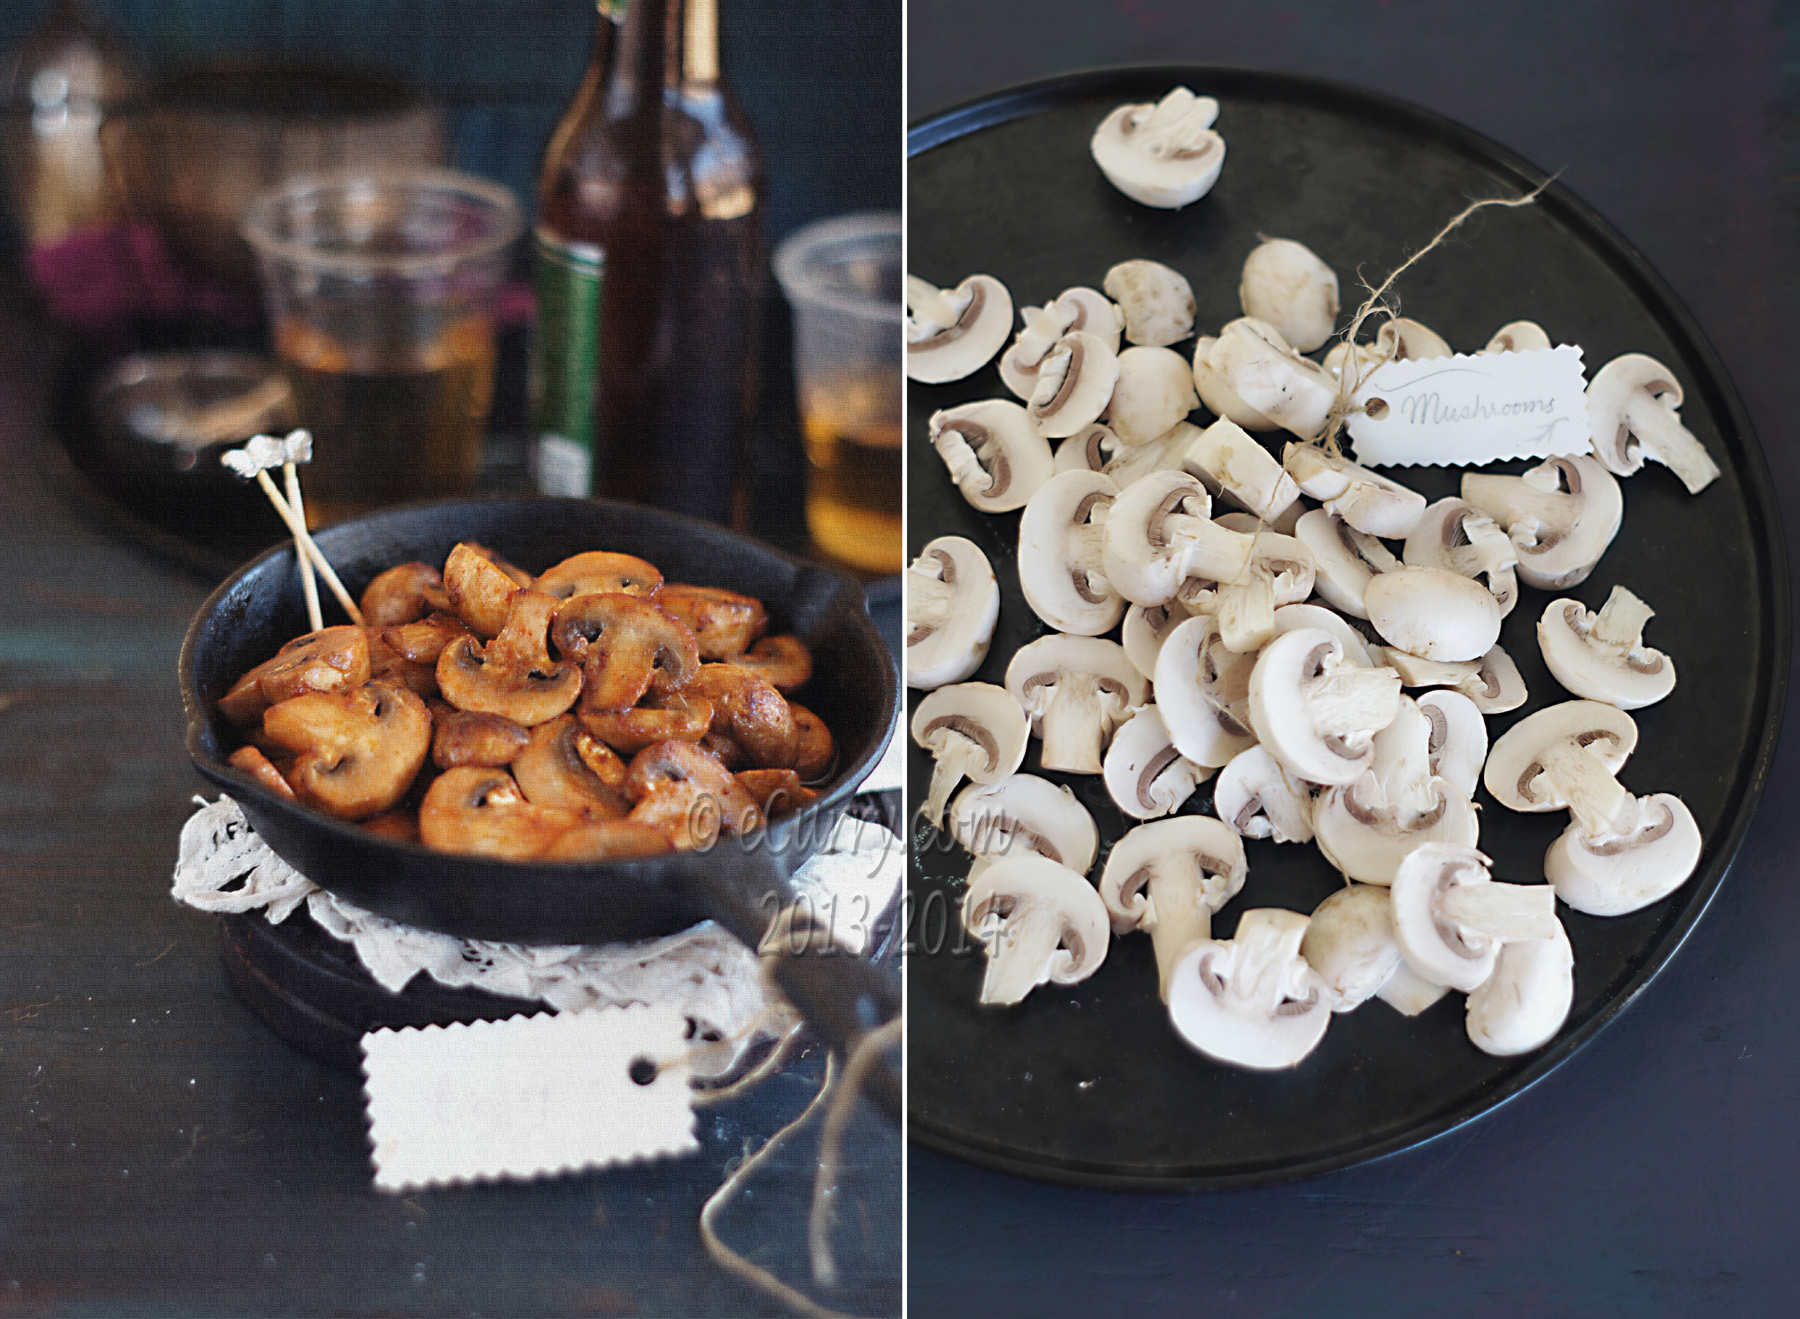 Mushroom-Sriracha-Stir-Fry-Diptych-1.jpg